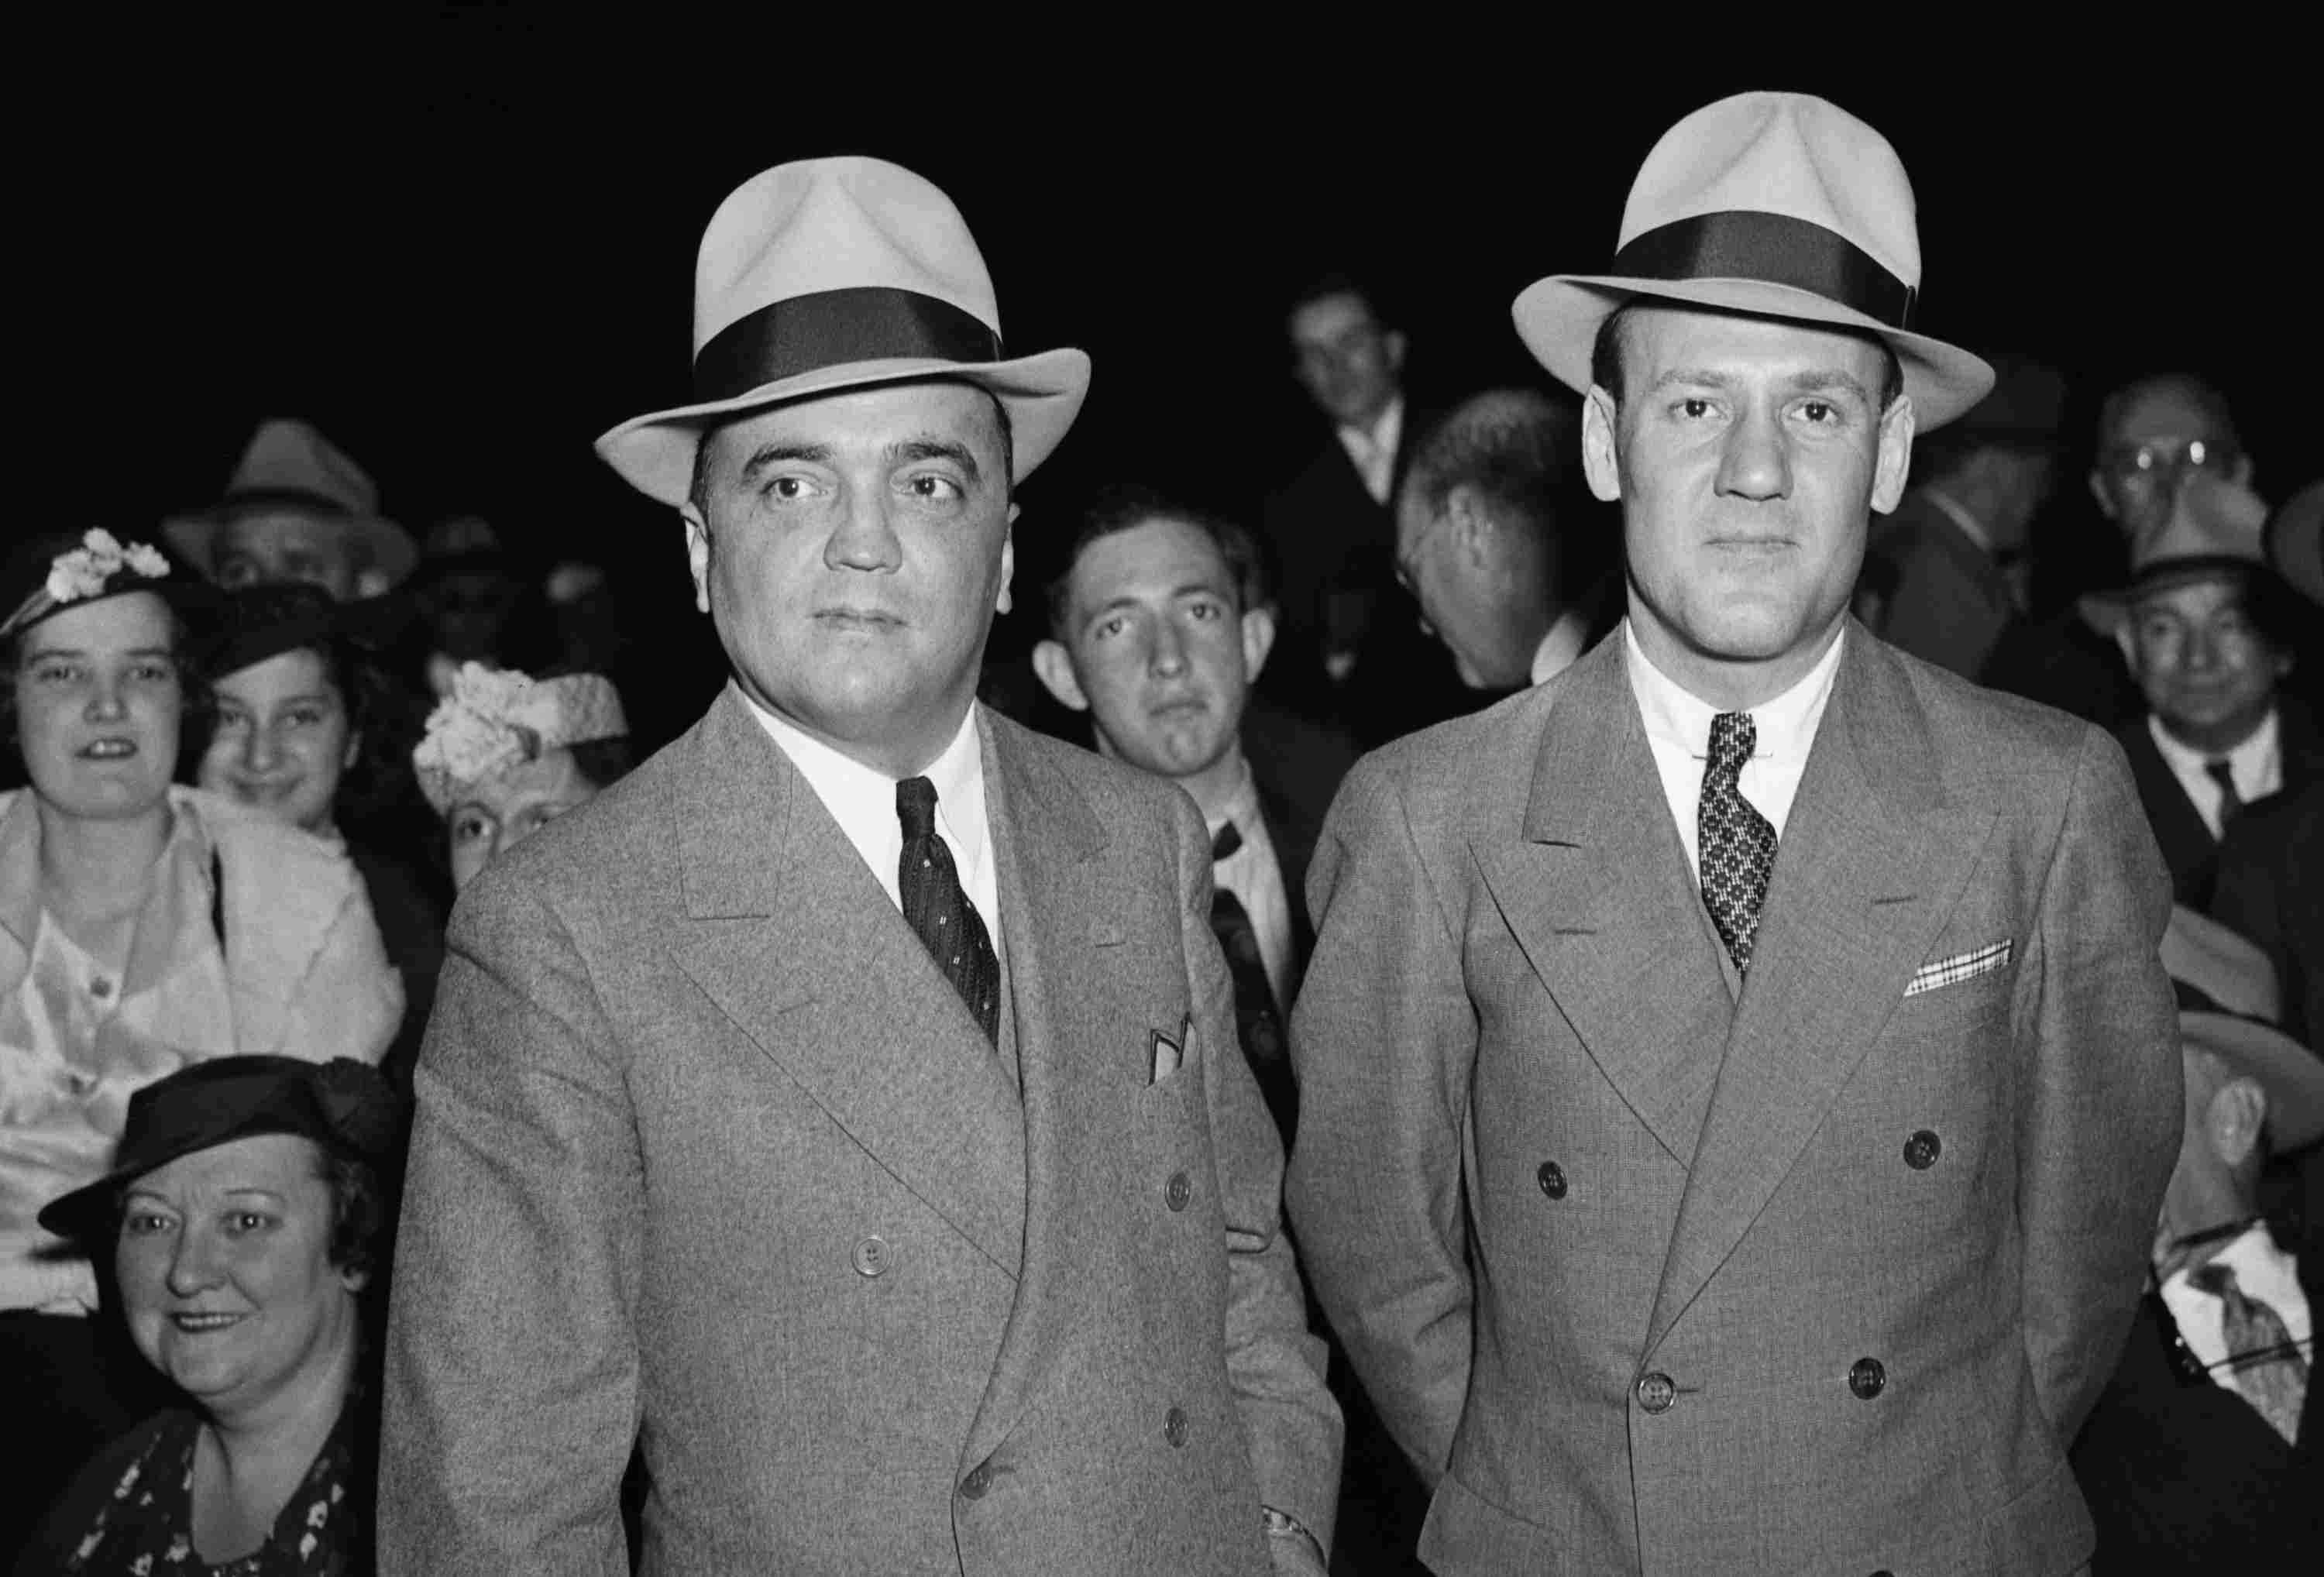 Photo of J. Edgar Hoover and Clyde Tolson